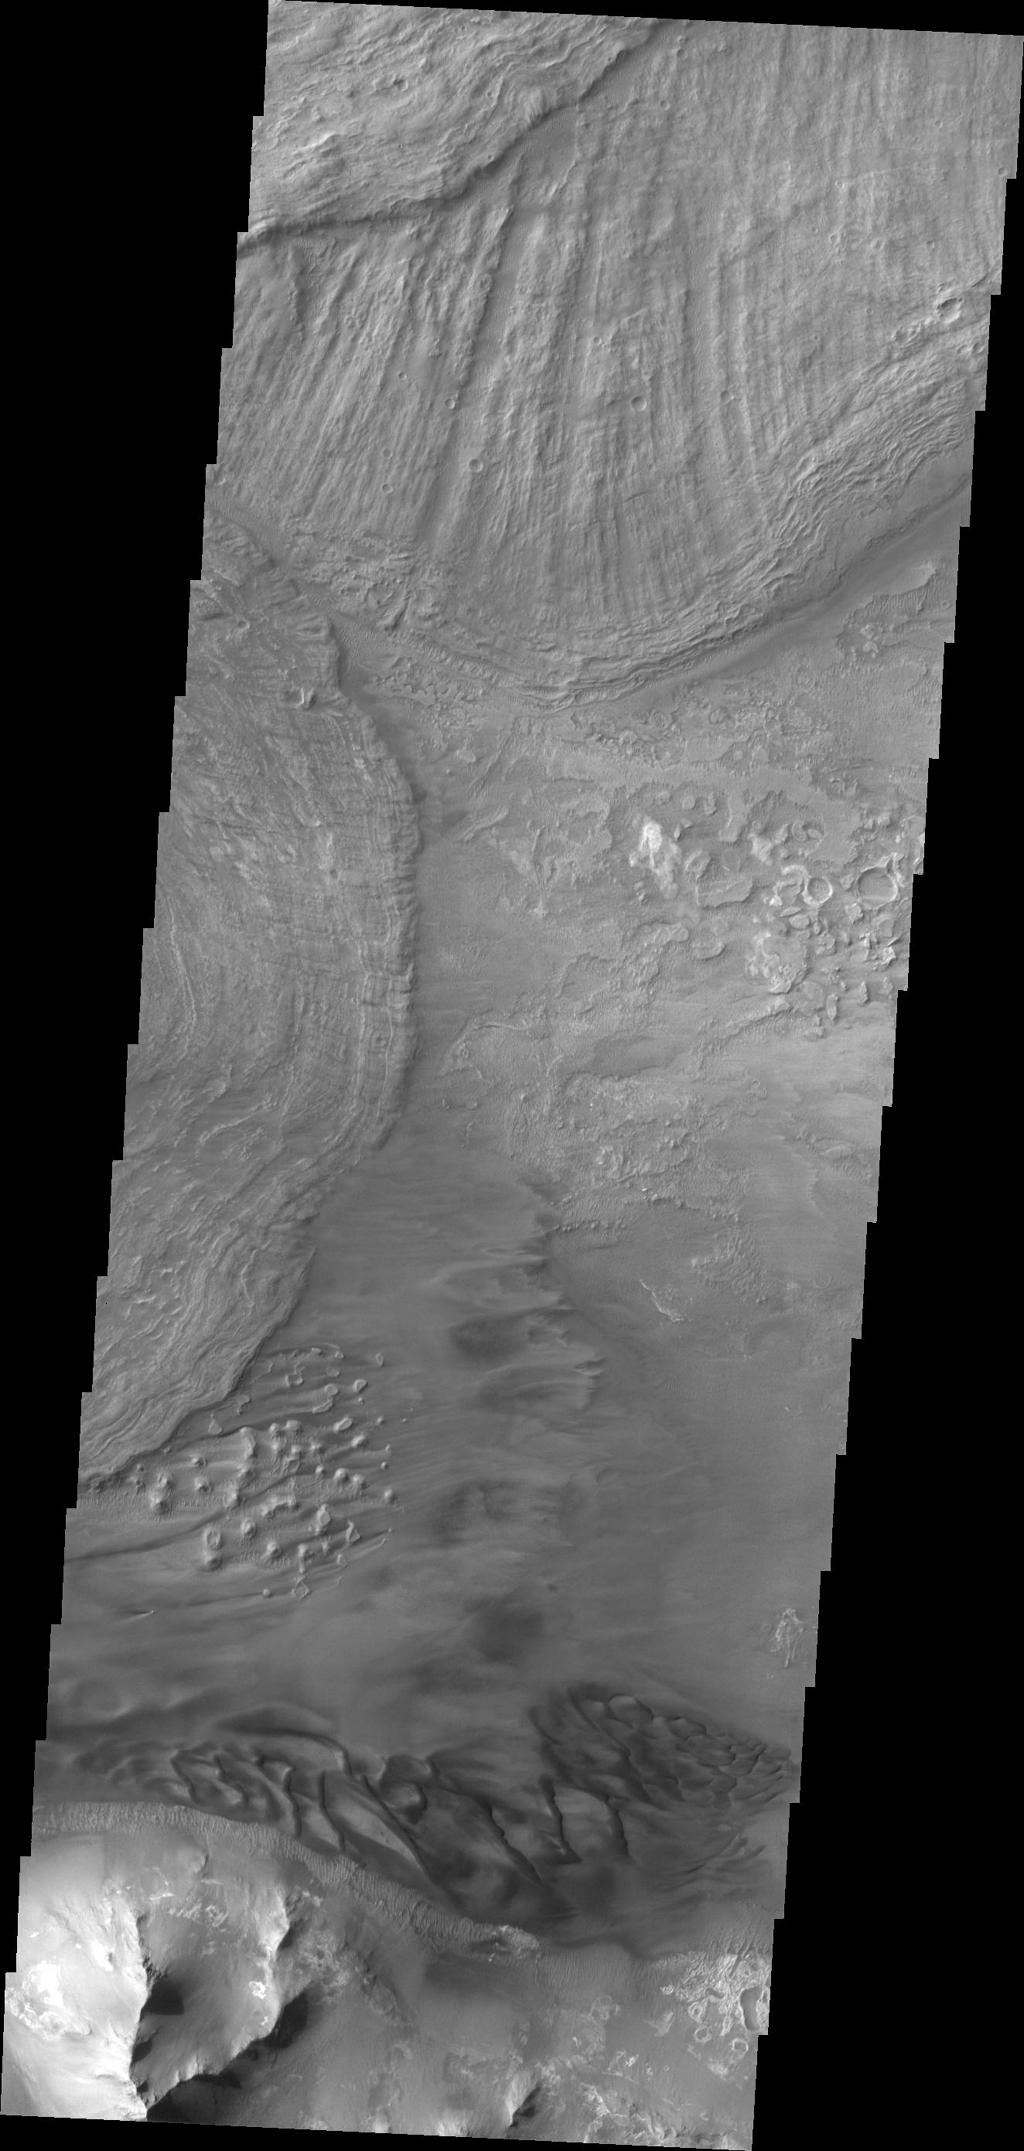 Large landslide deposits dominate this image of Ius Chasma captured by NASA's 2001 Mars Odyssey. Dunes are visible at the bottom of the frame.